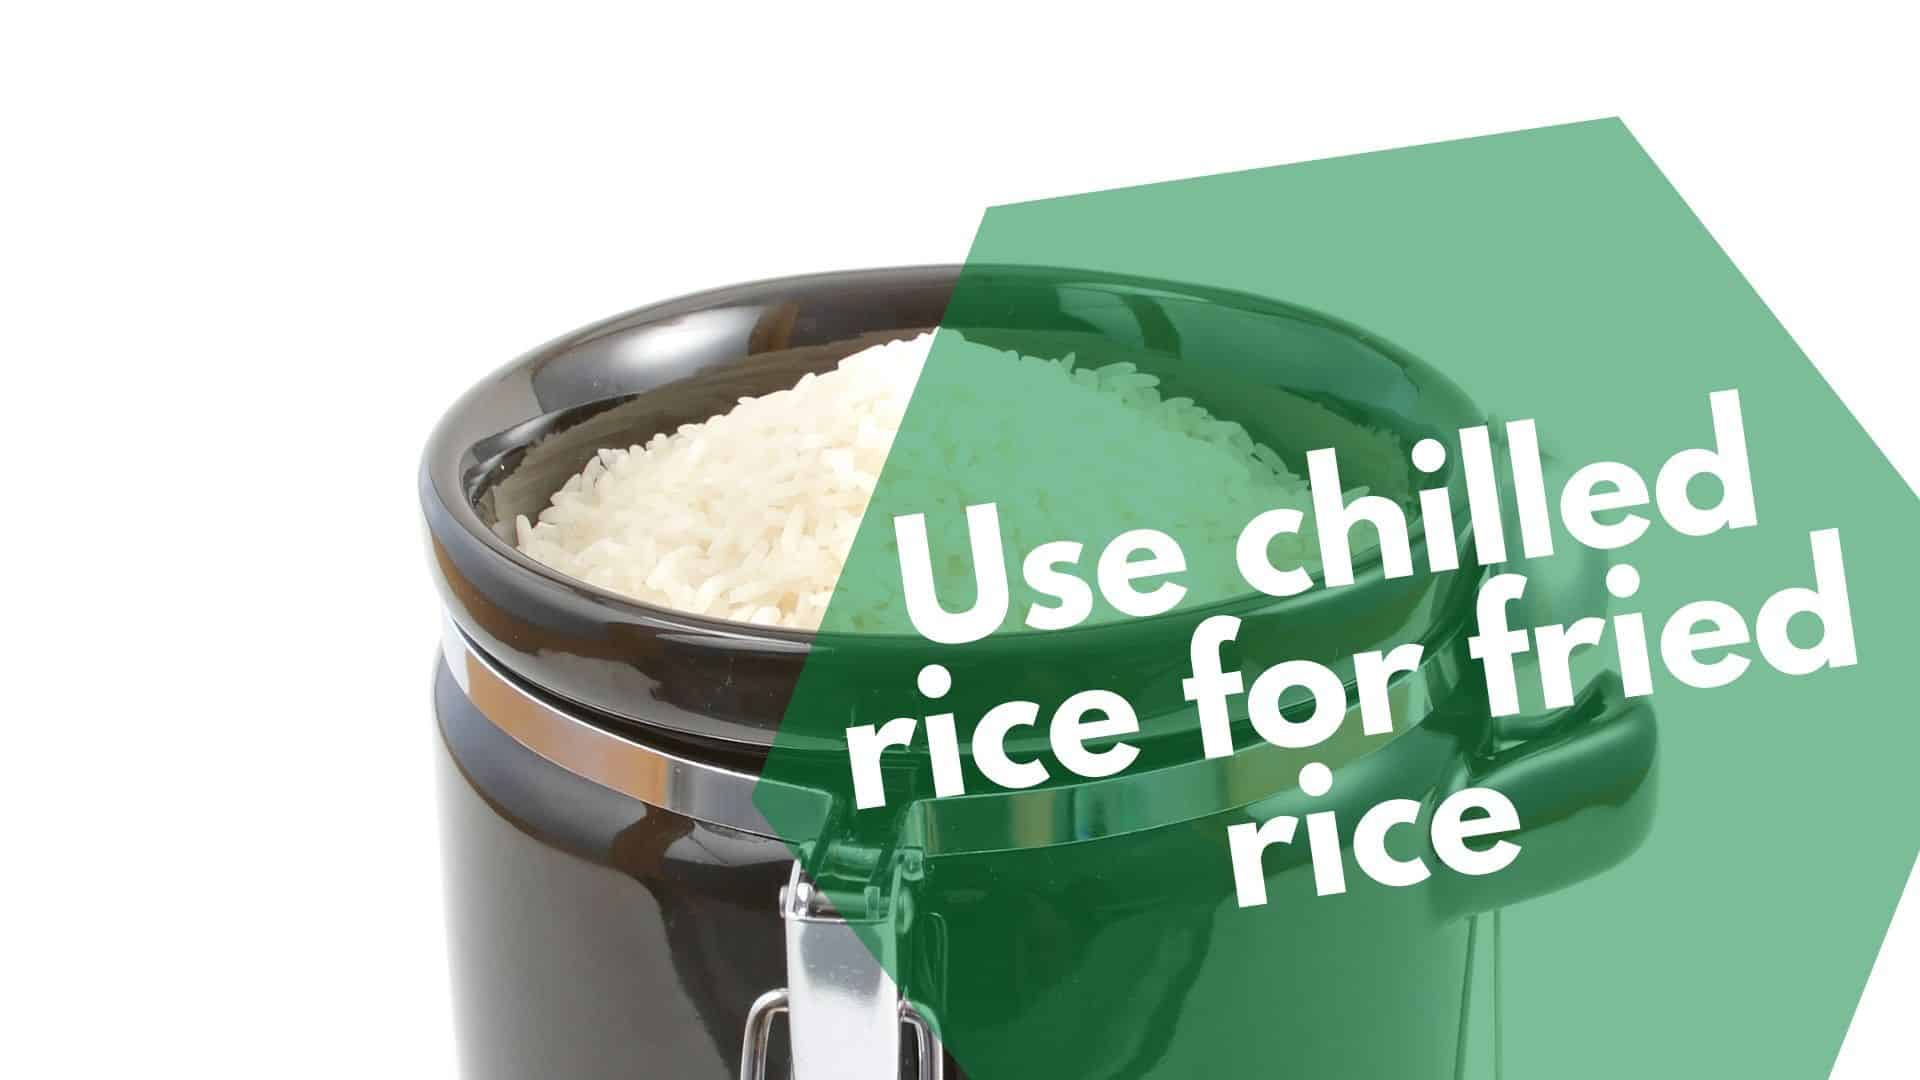 Use chilled rice for fried rice